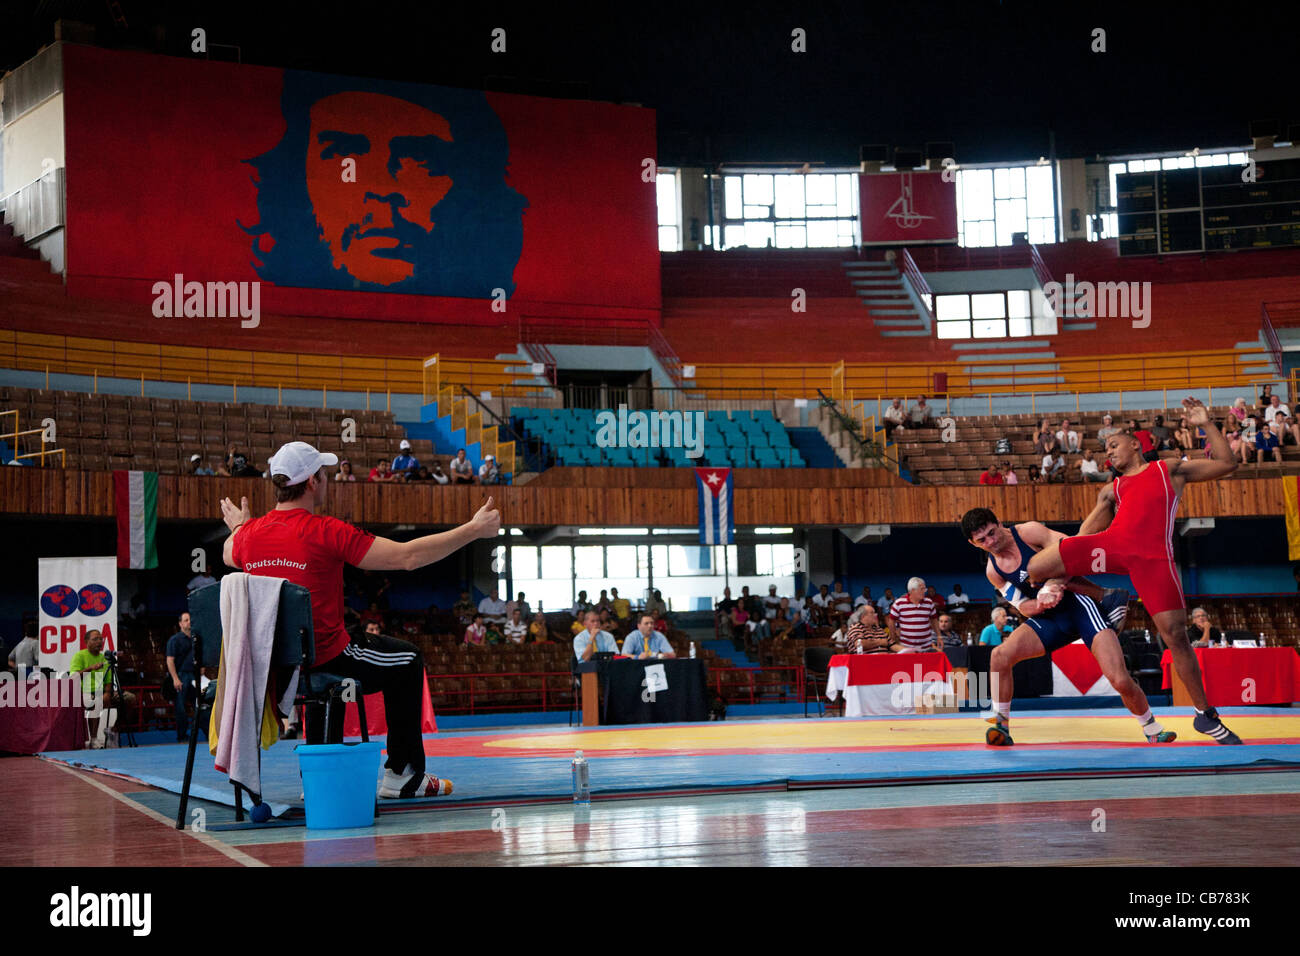 International Wrestling Match in the National Stadium, Havana (La Habana), Cuba - Stock Image